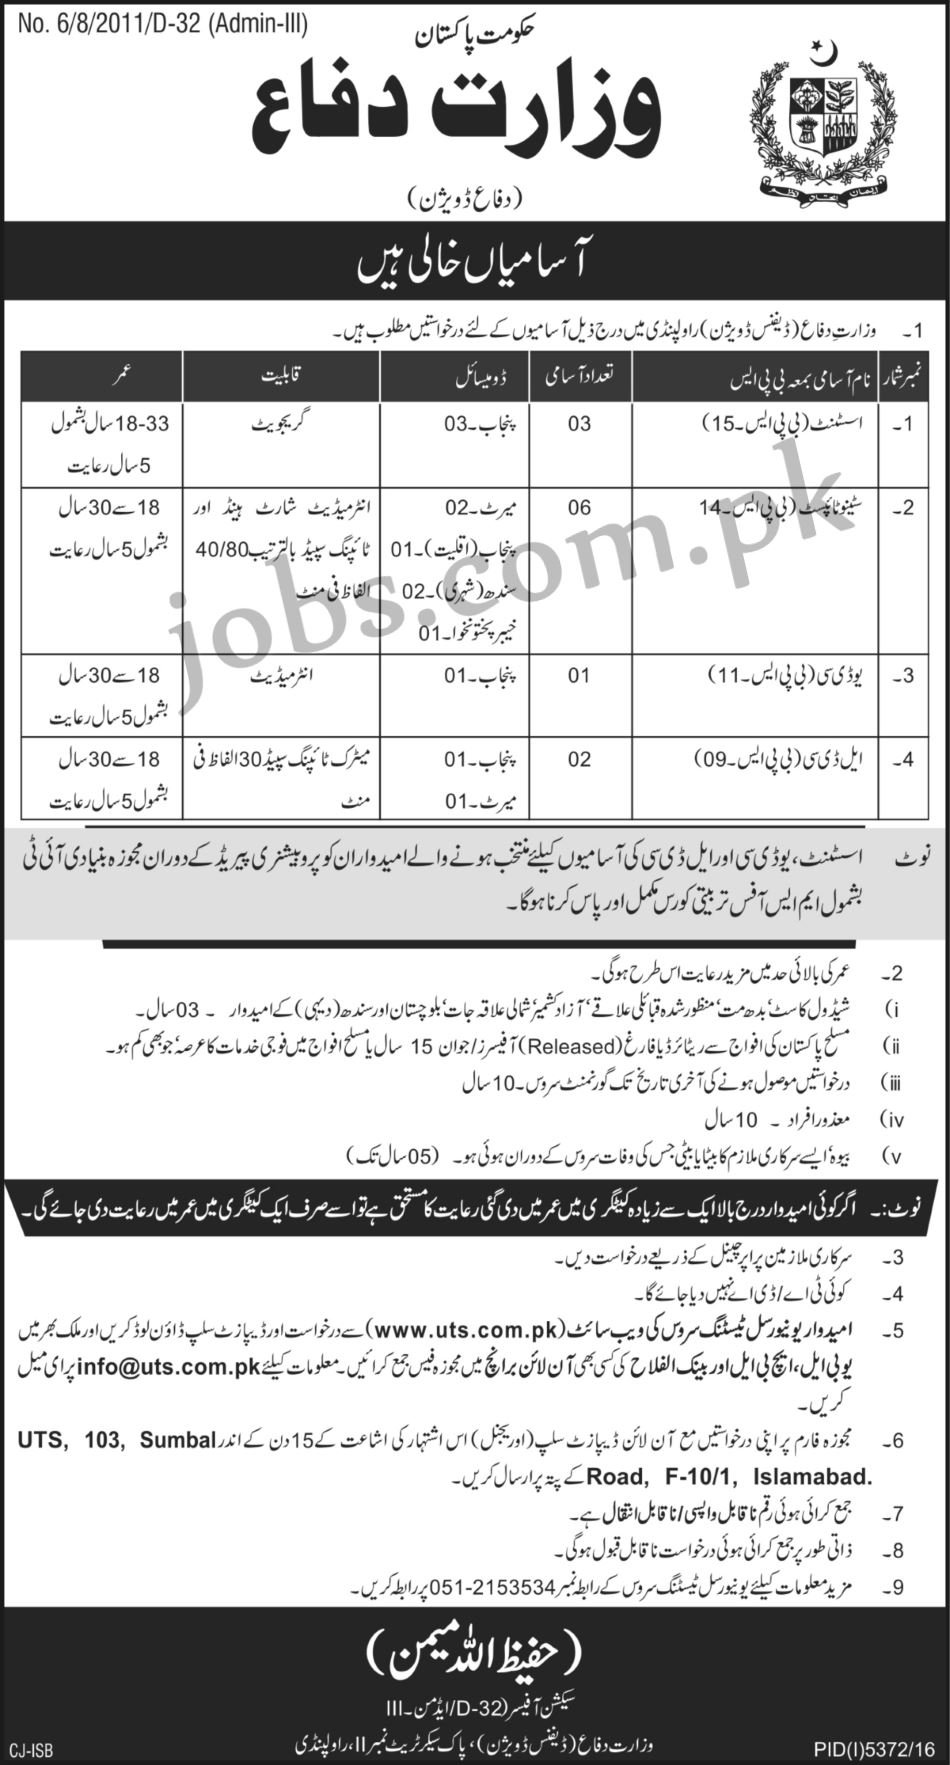 Ministry of defence pakistan jobs 2017 12 posts apply by 27th how to apply falaconquin